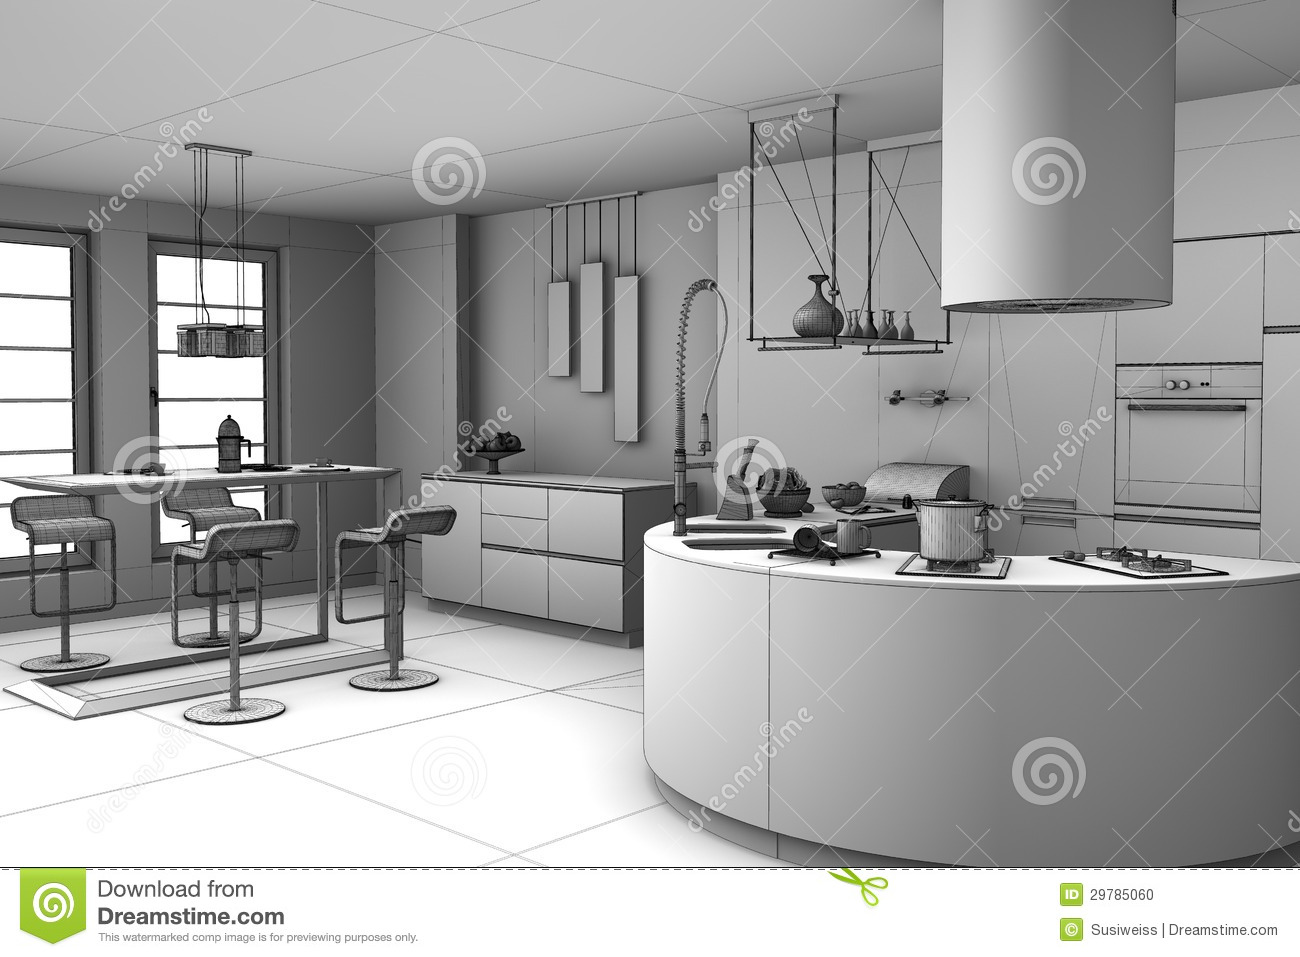 3d rendant la cuisine moderne illustration stock illustration du trame m re 29785060 for Ceramic cuisine moderne